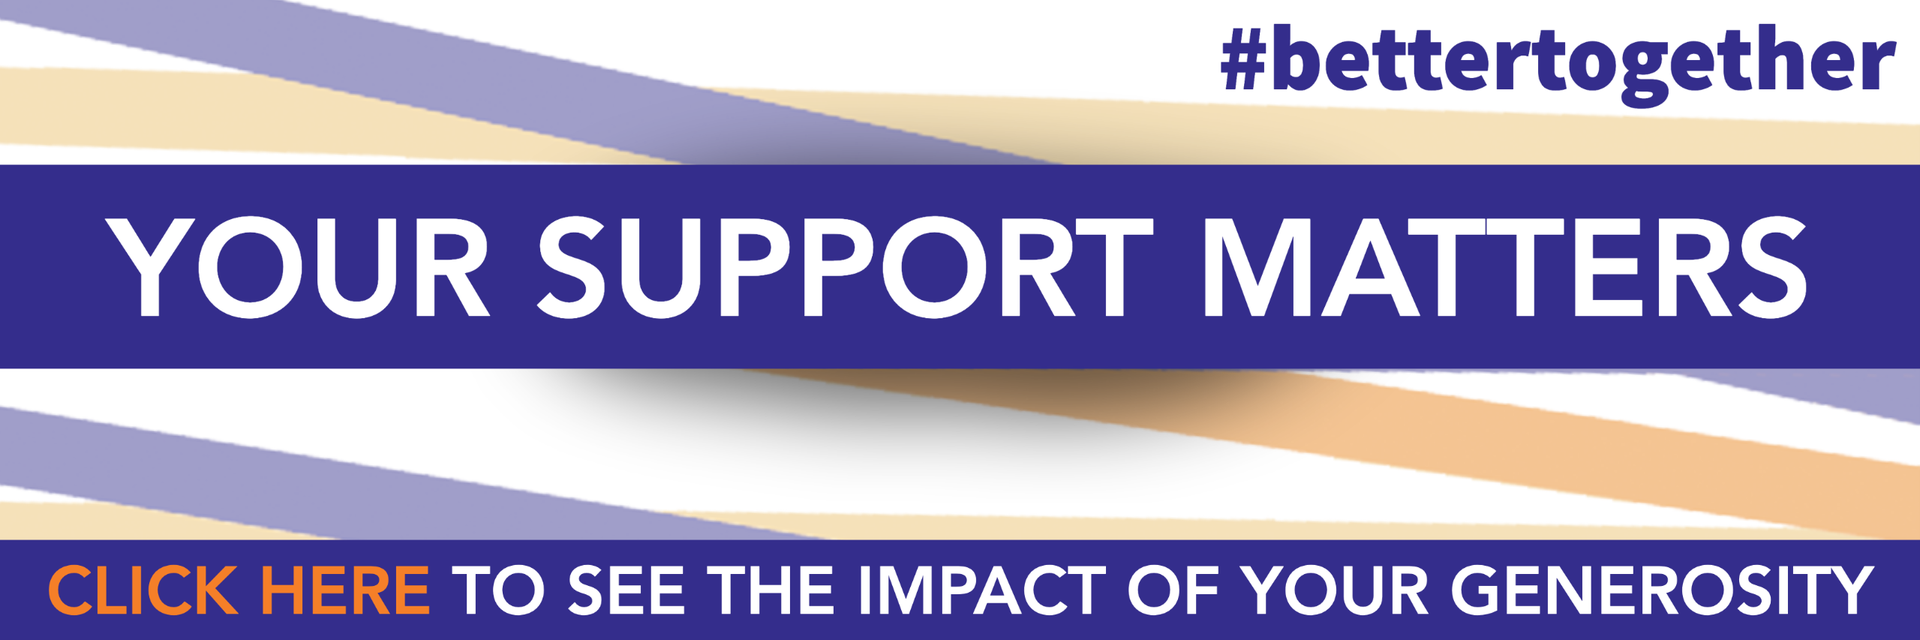 Your Support Matters - Click Here